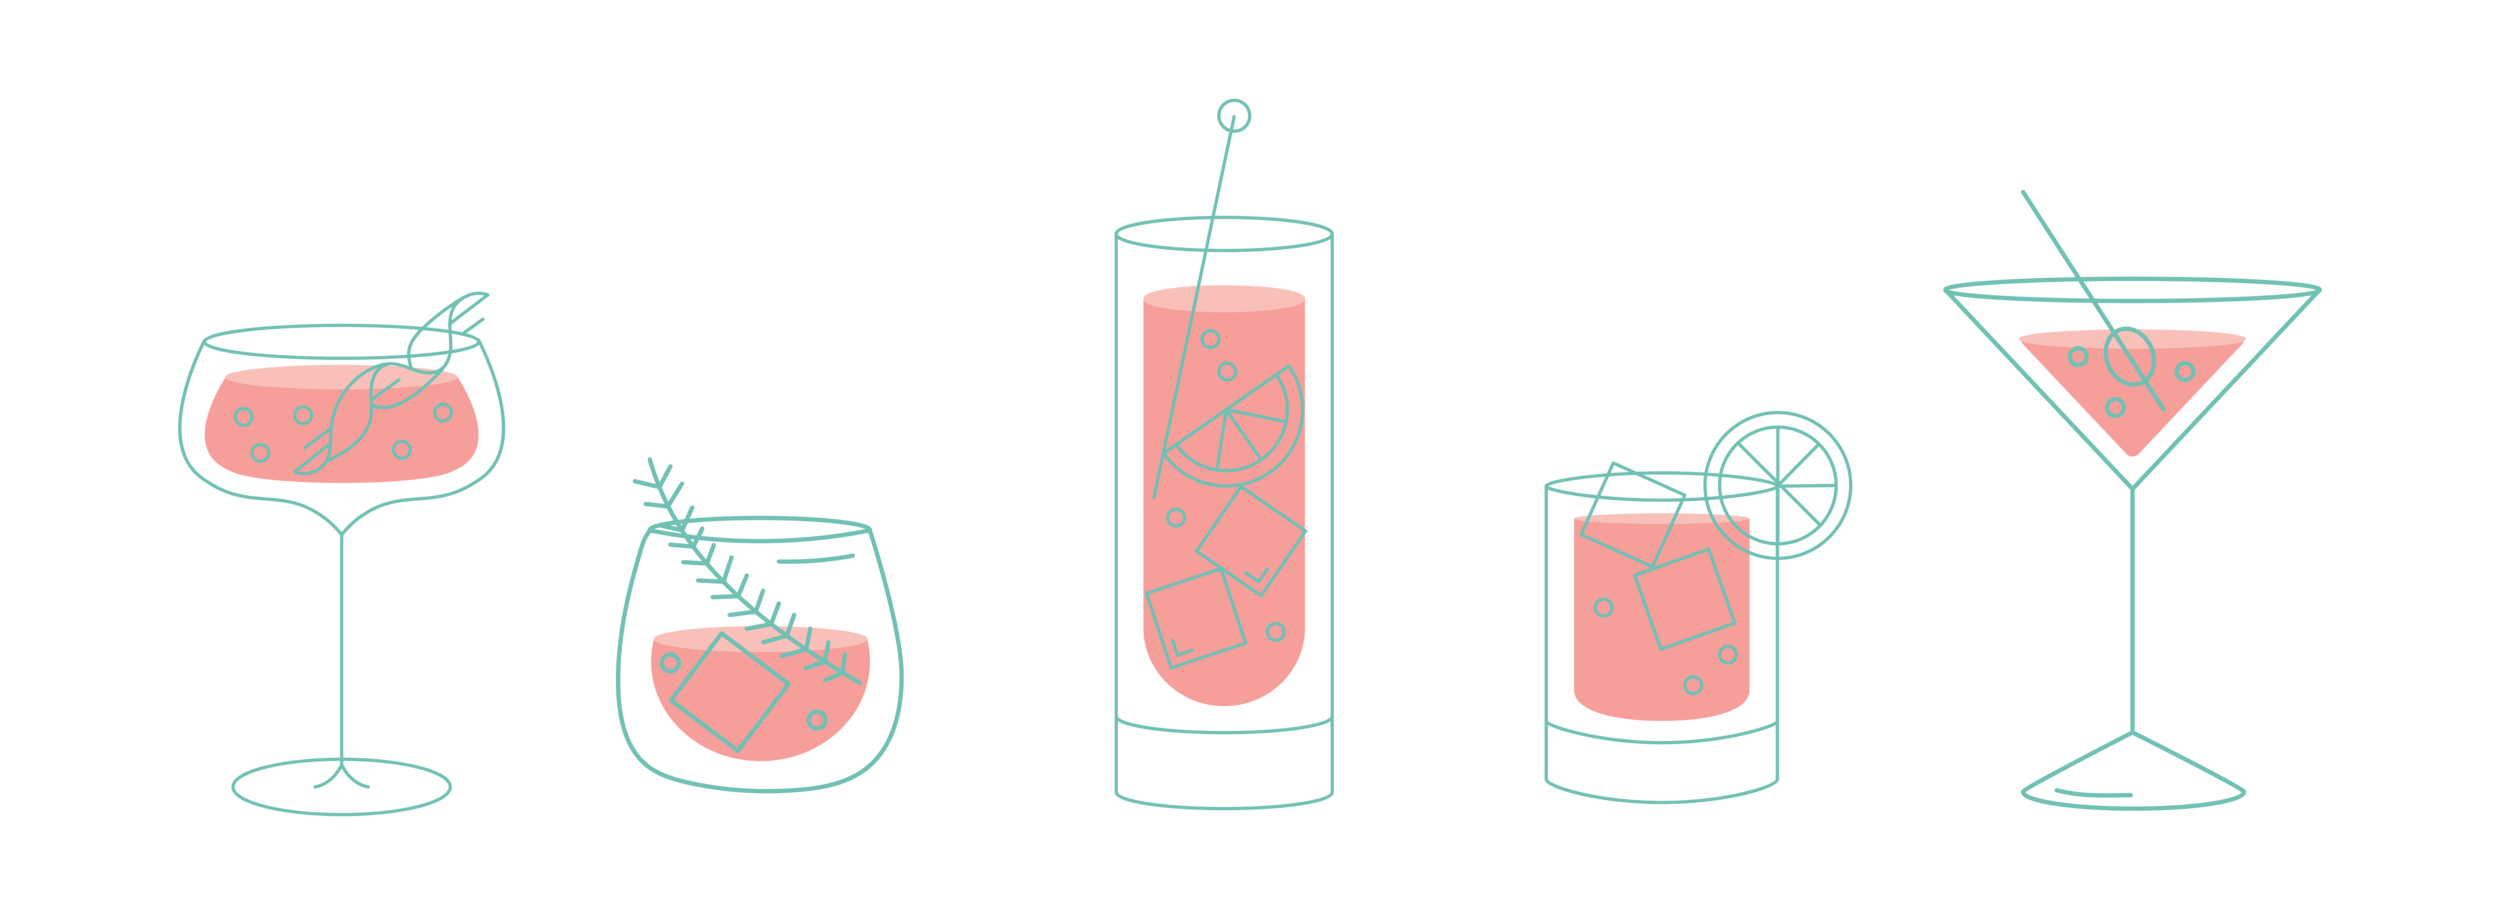 raven-and-the-rose-drinks-bar-01.png